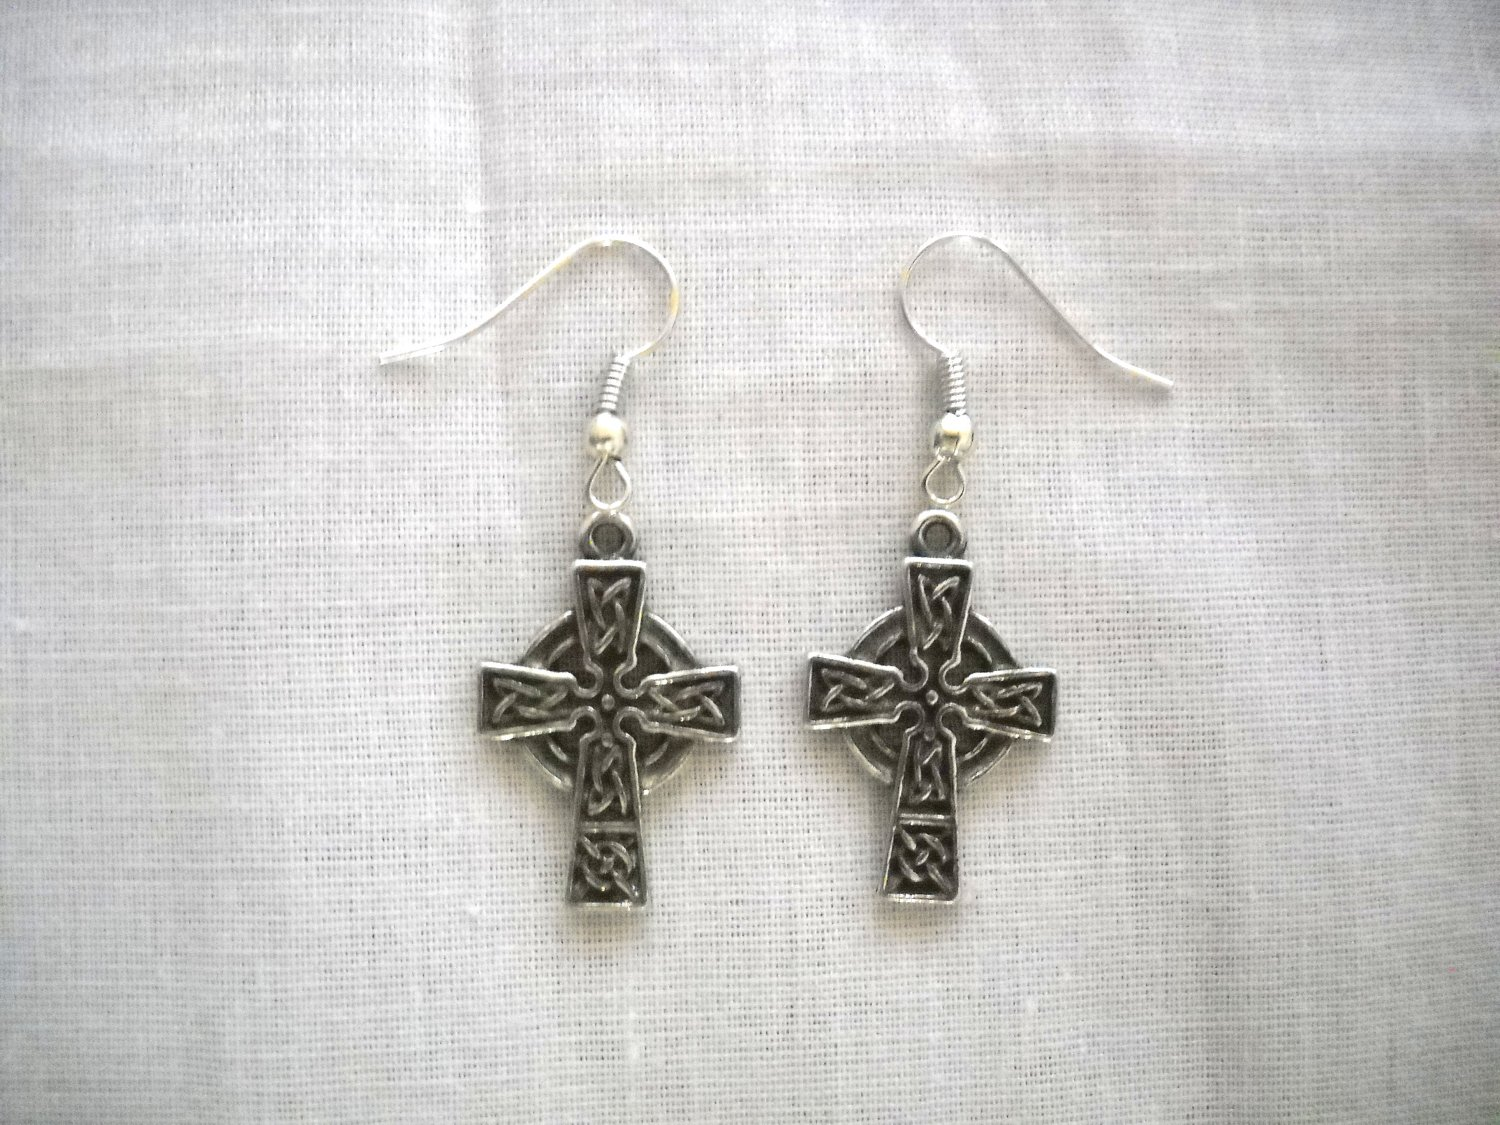 INFINITY CELTIC KNOT SCROLL CROSS CHARMS DANGLING SILVER PEWTER PAIR OF EARRINGS